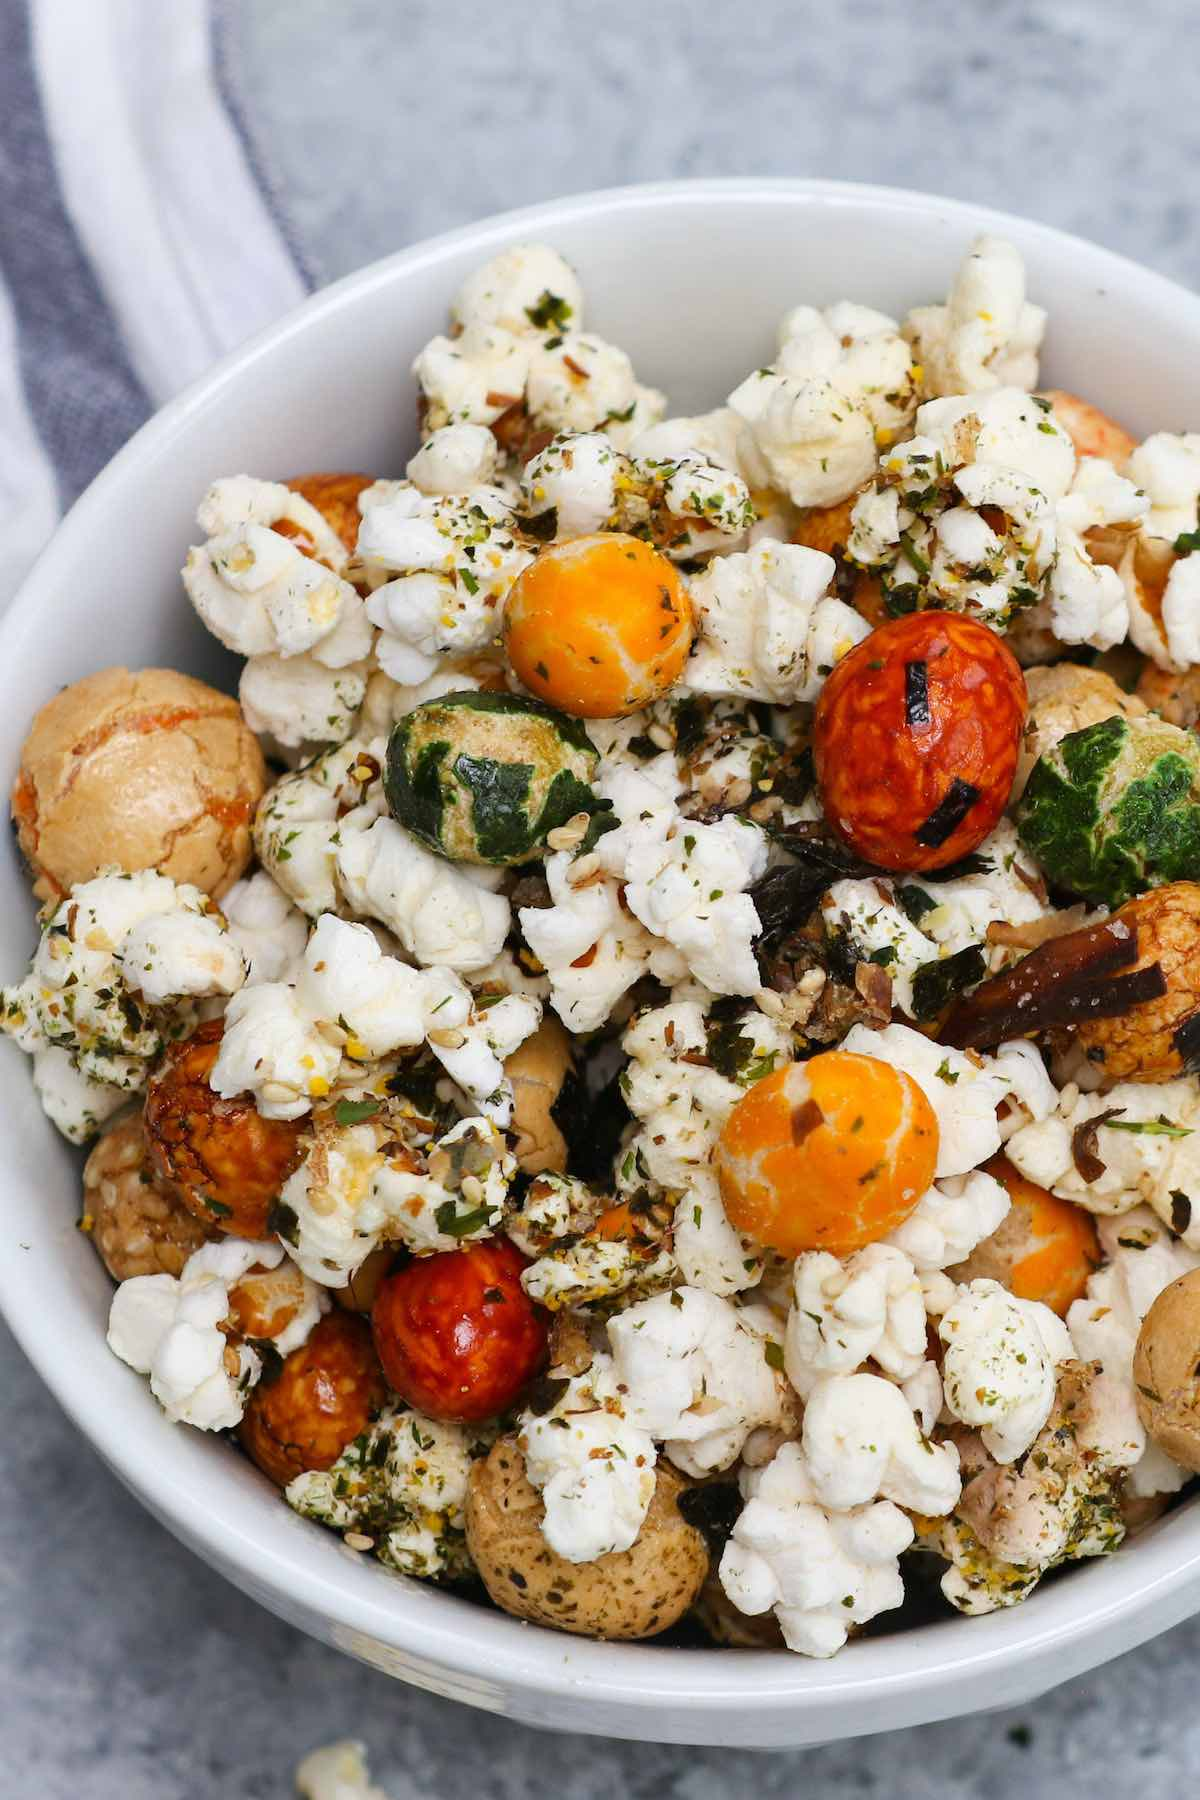 Are you looking for the perfect at-home movie snack? Look no further than Hawaiian Hurricane Popcorn. This easy treat is crunchy and buttery, with a bit of sweetness. Made with popcorn kernels, Japanese rice crackers, and furikake, this easy stove-top recipe is so much better than microwave popcorn and it takes less than 10 minutes to make! #HurricanePopcorn #HawaiianHurricanePopcorn